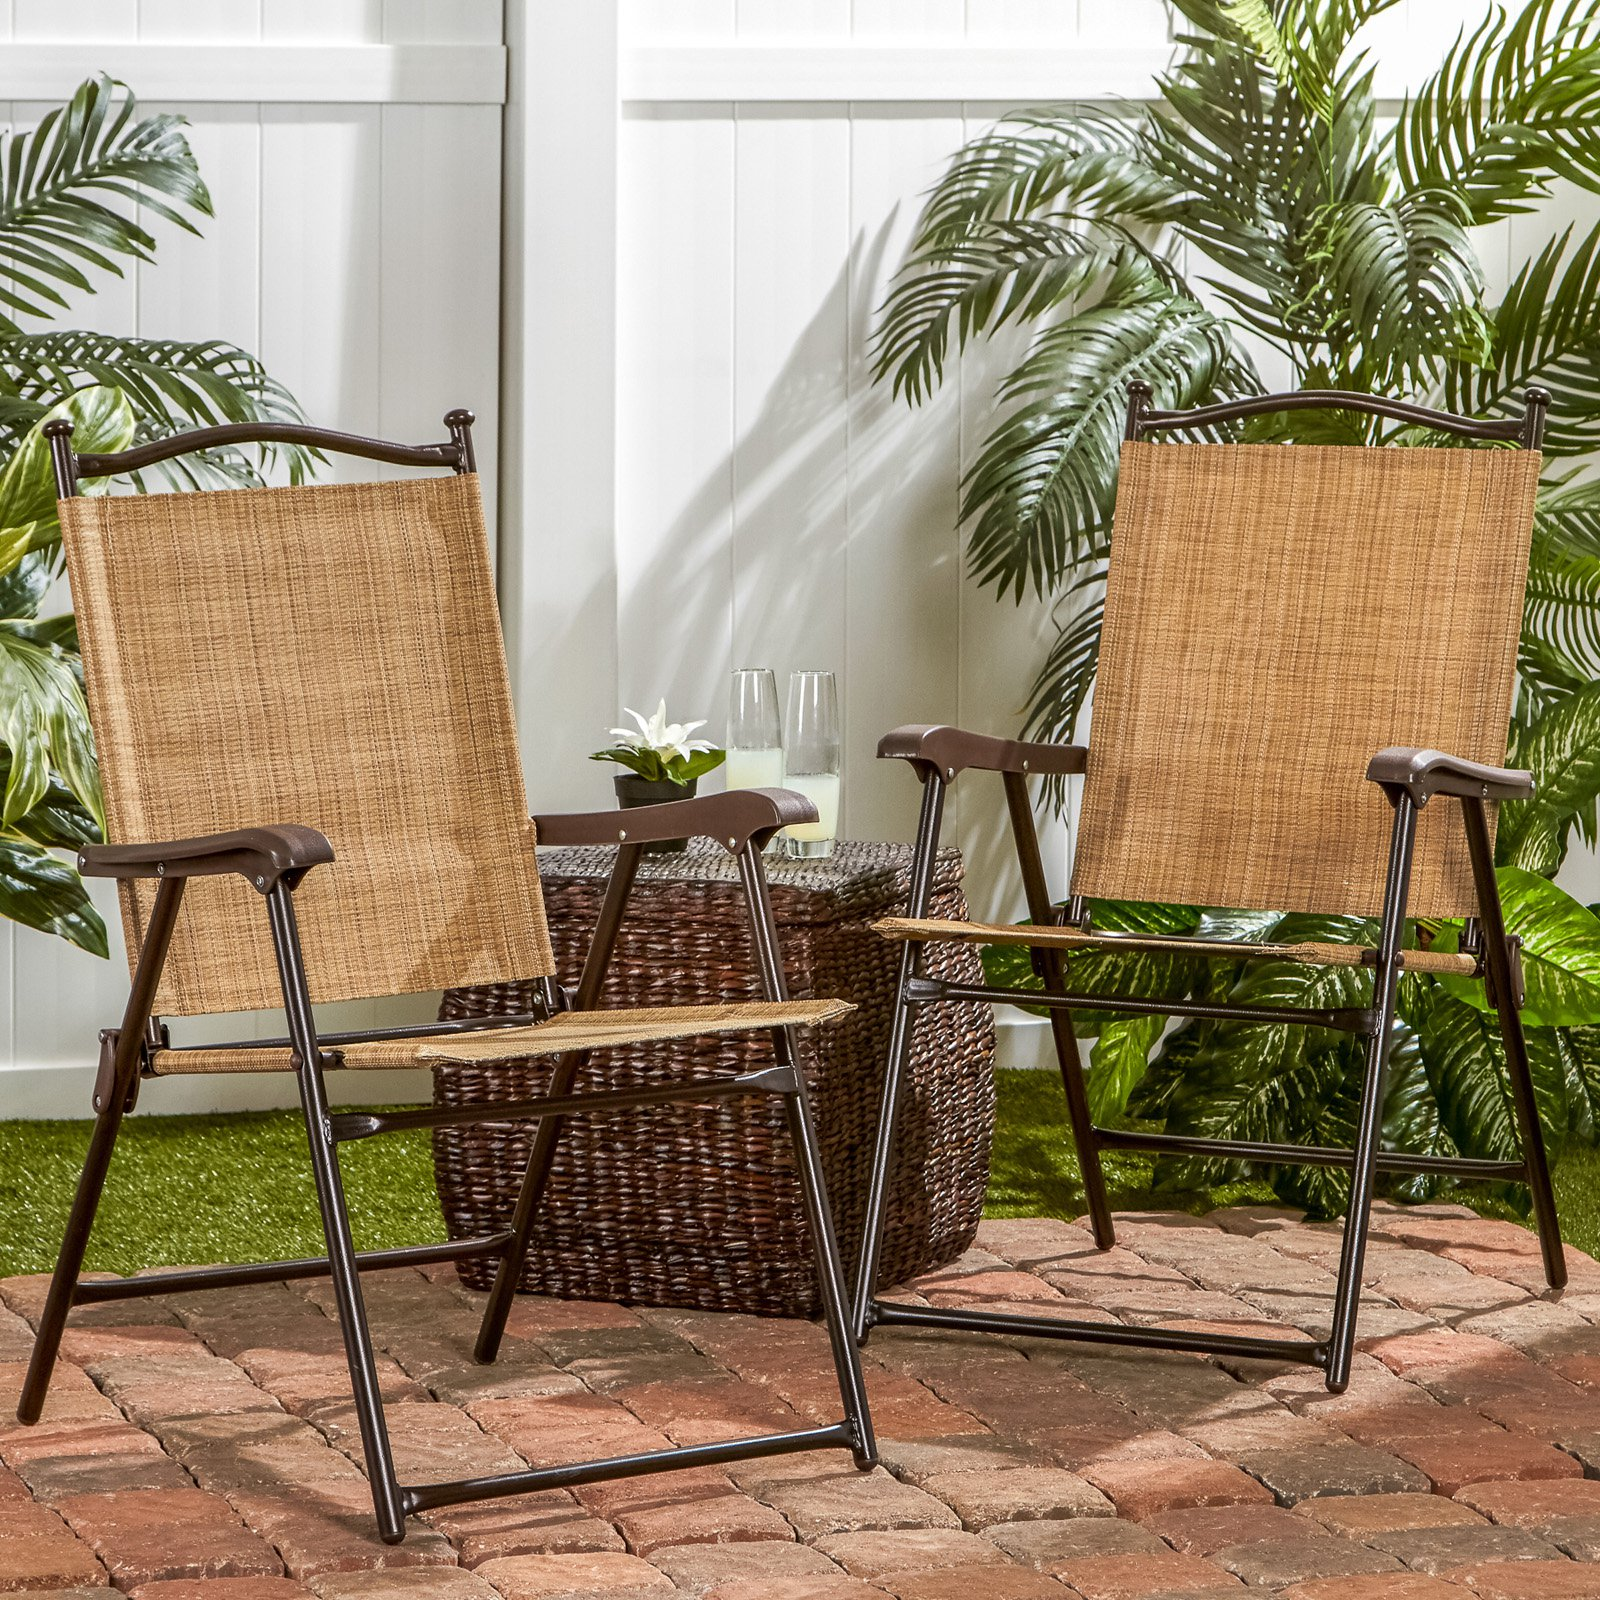 sling back patio chairs staples office chair with neck support black outdoor bamboo set of 2 walmart com